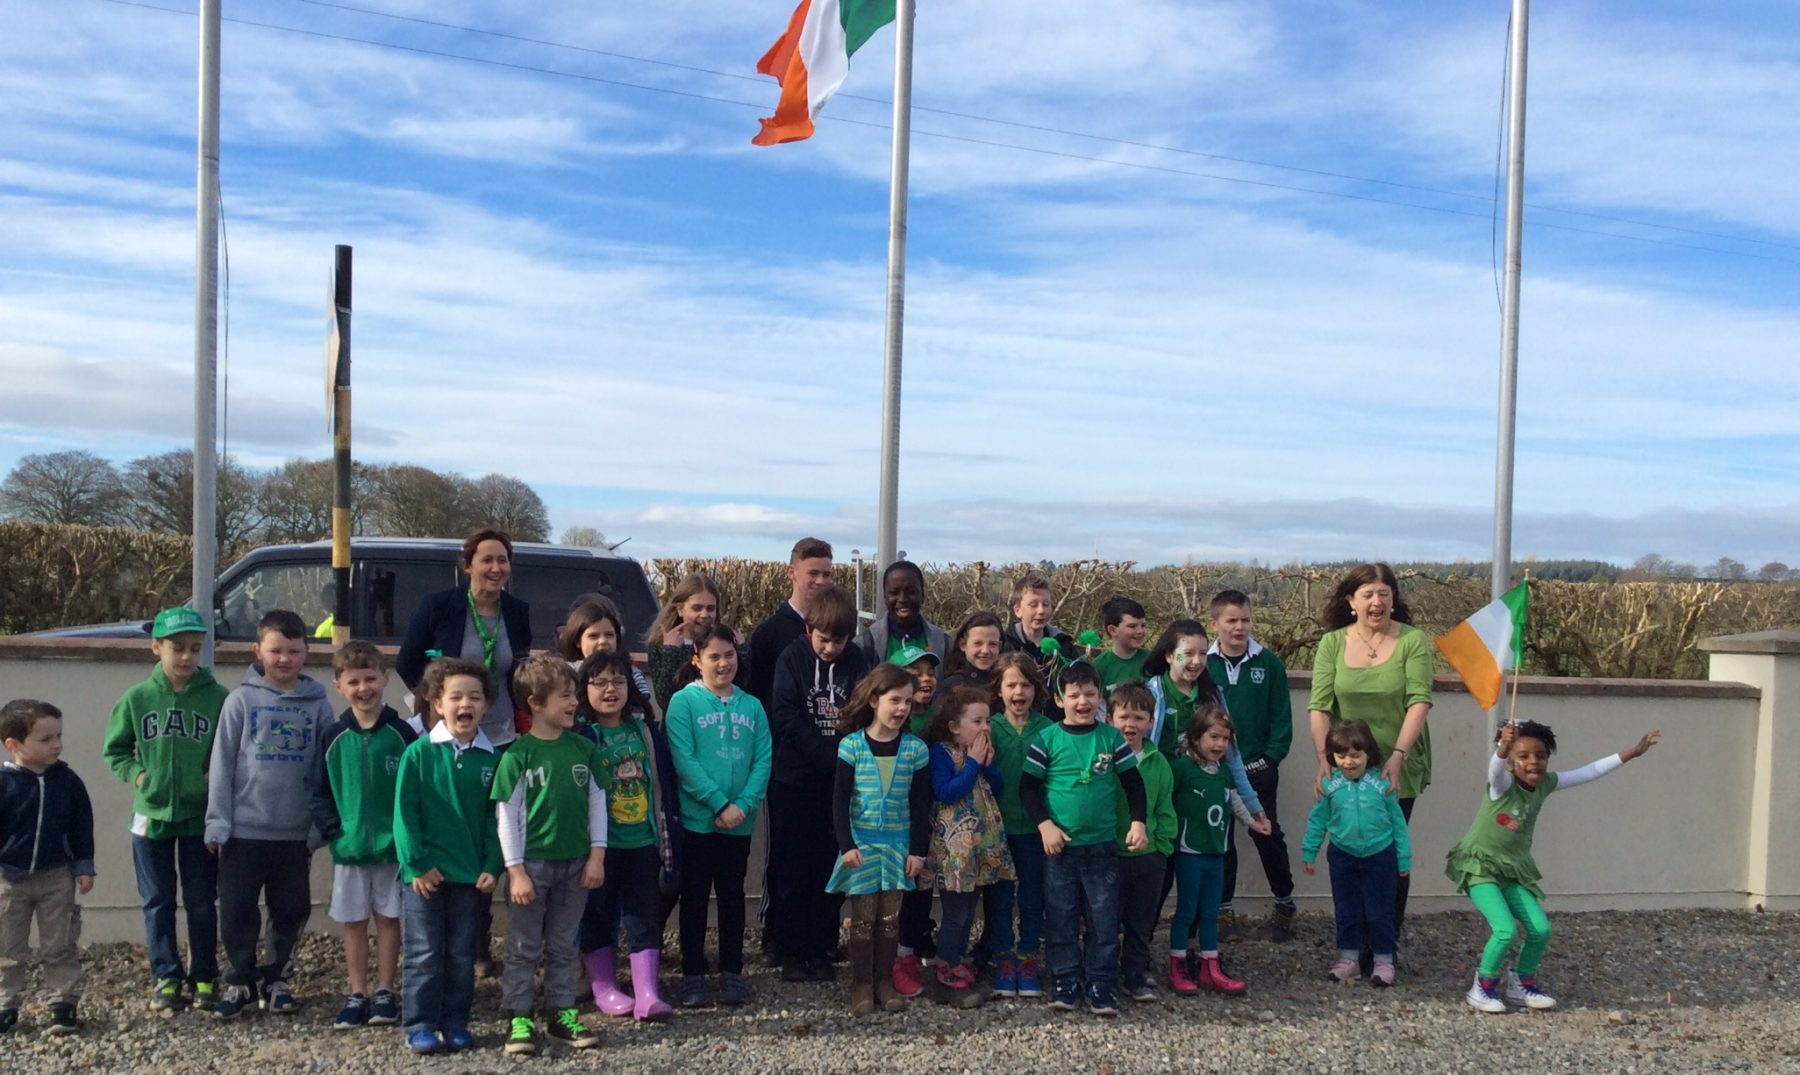 Blessington Educate Together National School